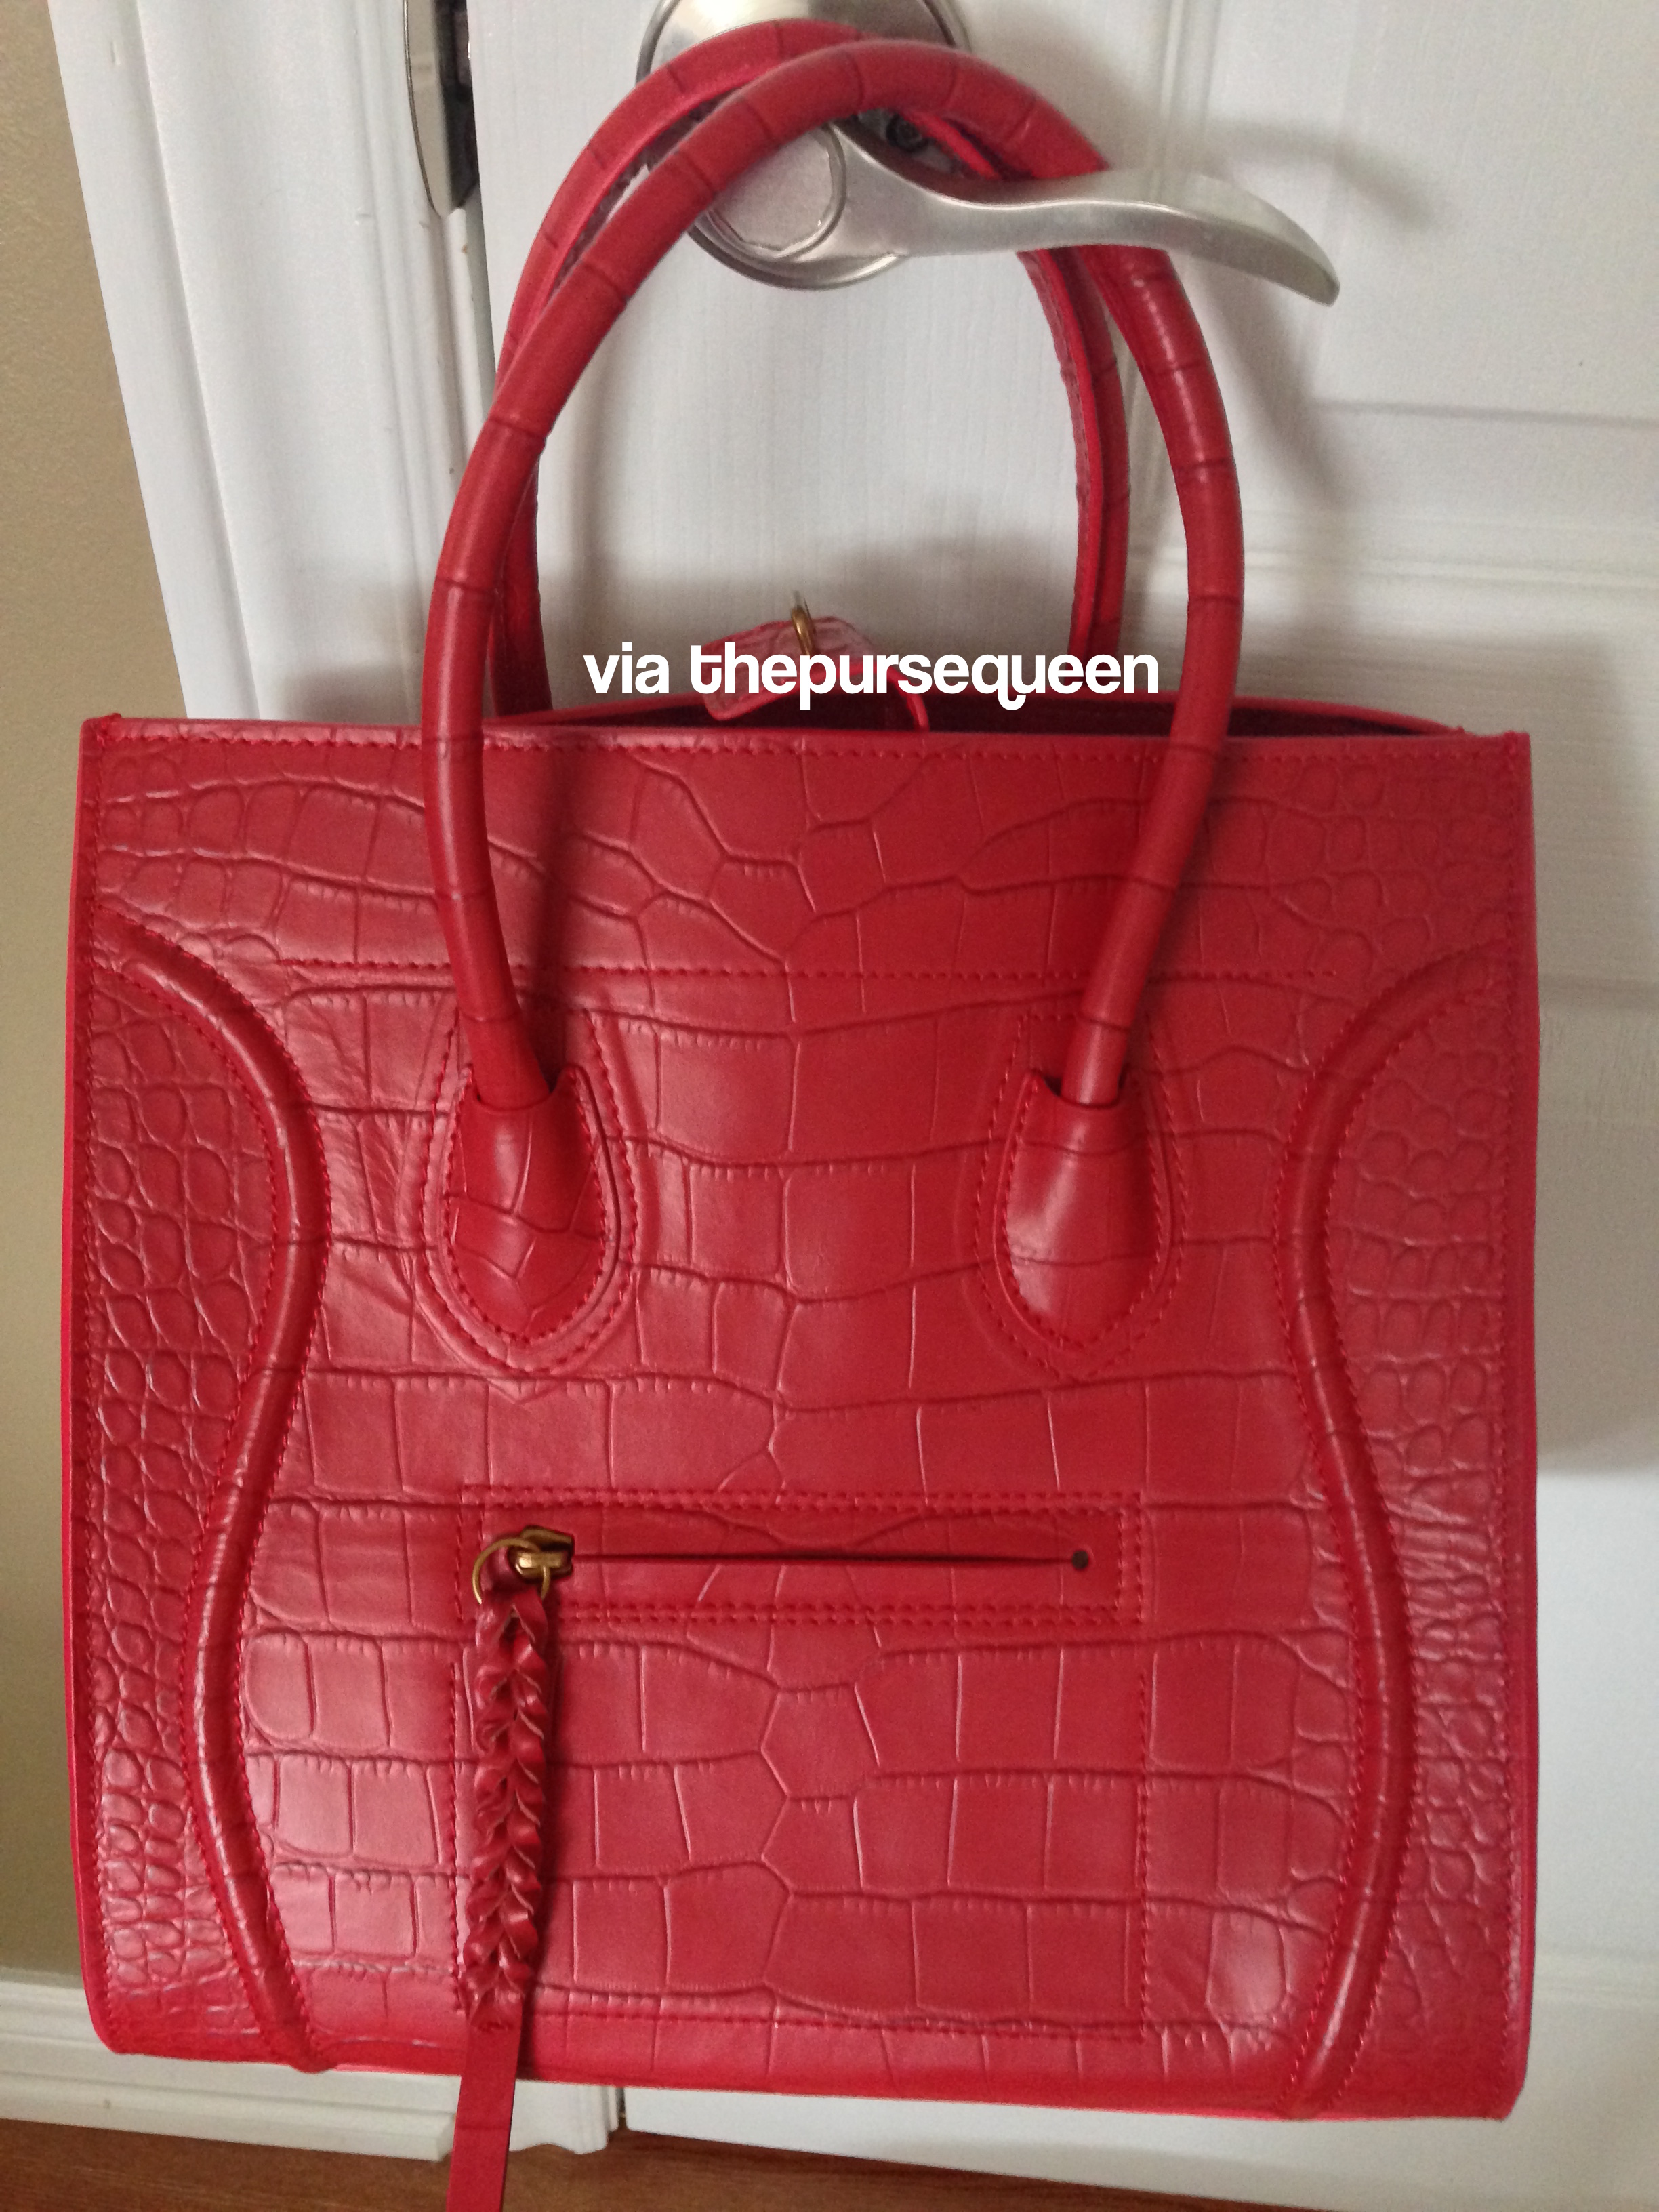 Celine Phantom Replica Review \u2013 Authentic \u0026amp; Replica Bags \u0026amp; Replica ...